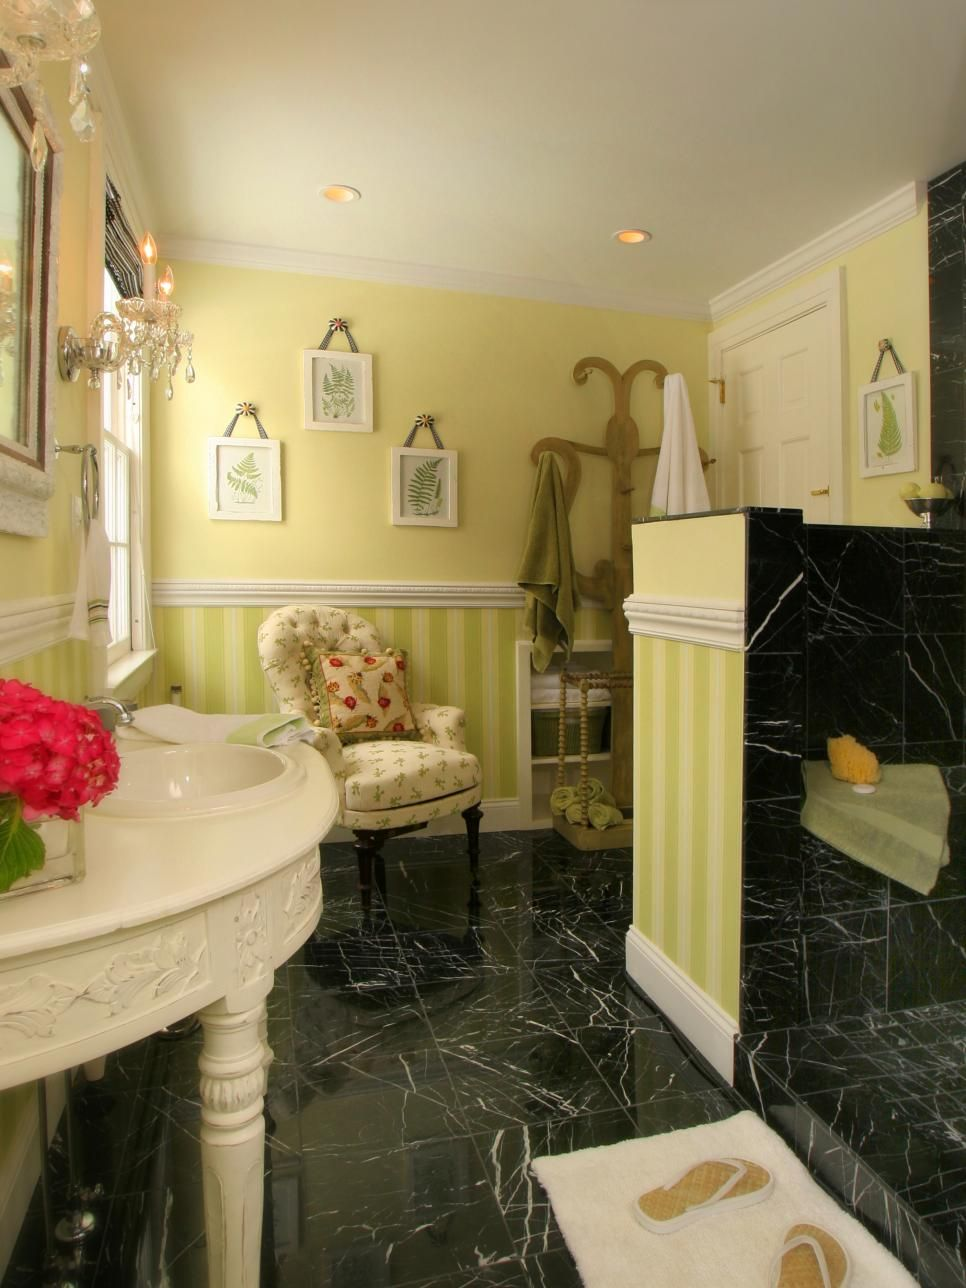 Colorful Bathrooms From HGTV Fans | Serene bathroom, Colorful ...